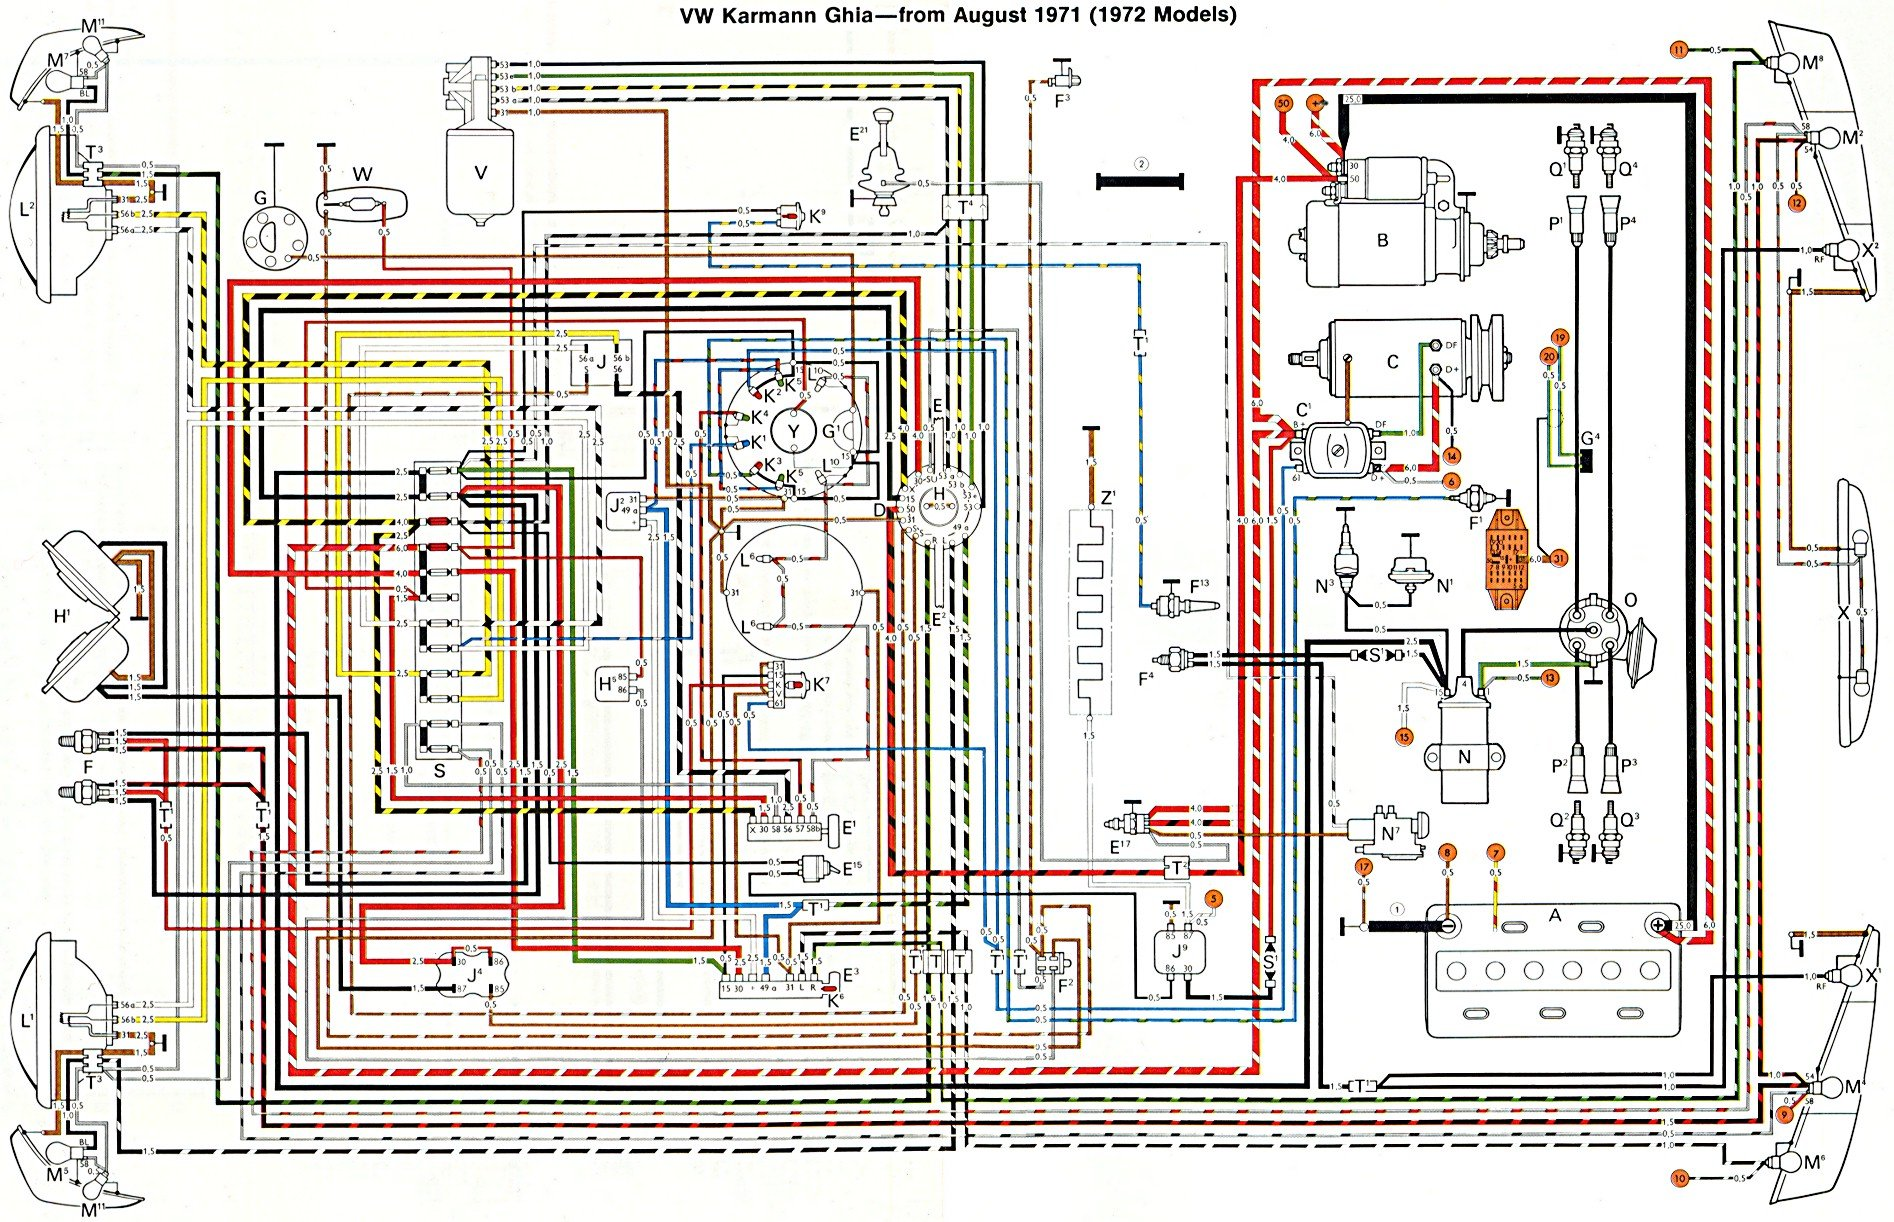 72ghia thesamba com karmann ghia wiring diagrams 1974 vw beetle wiring diagram at virtualis.co